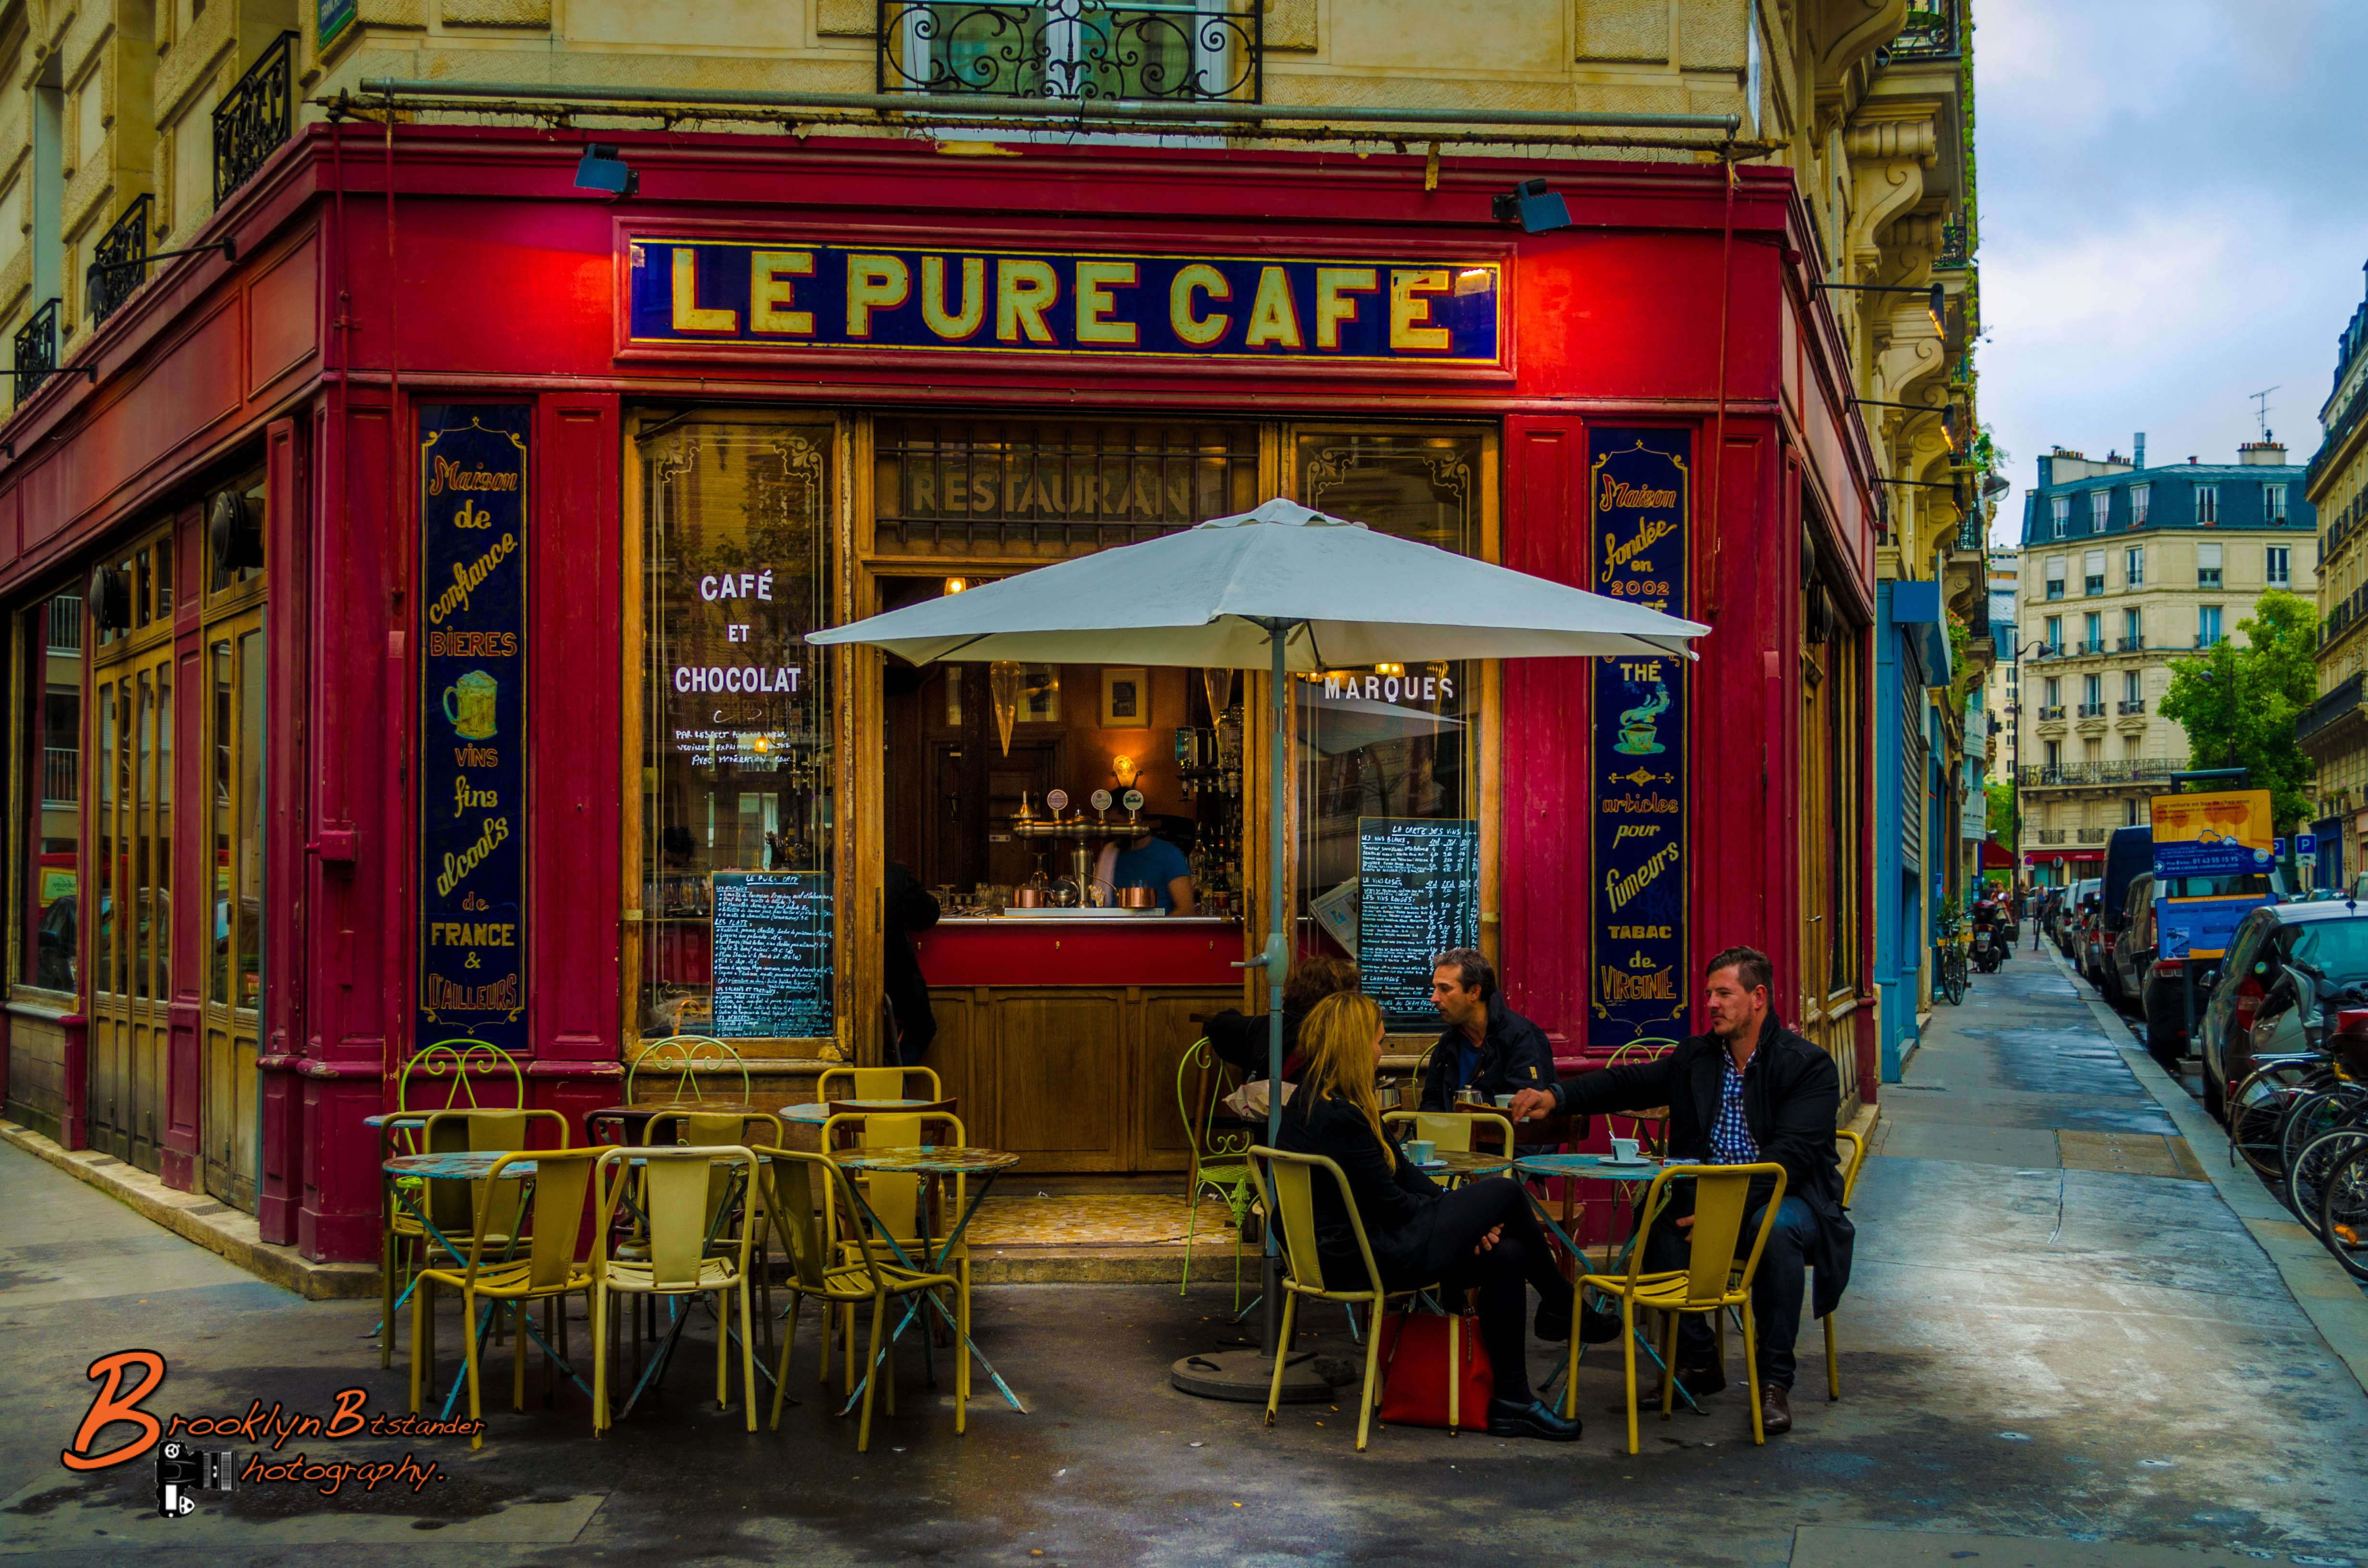 Today the streets of Paris , above the fantastic Le Pure Cafe ...